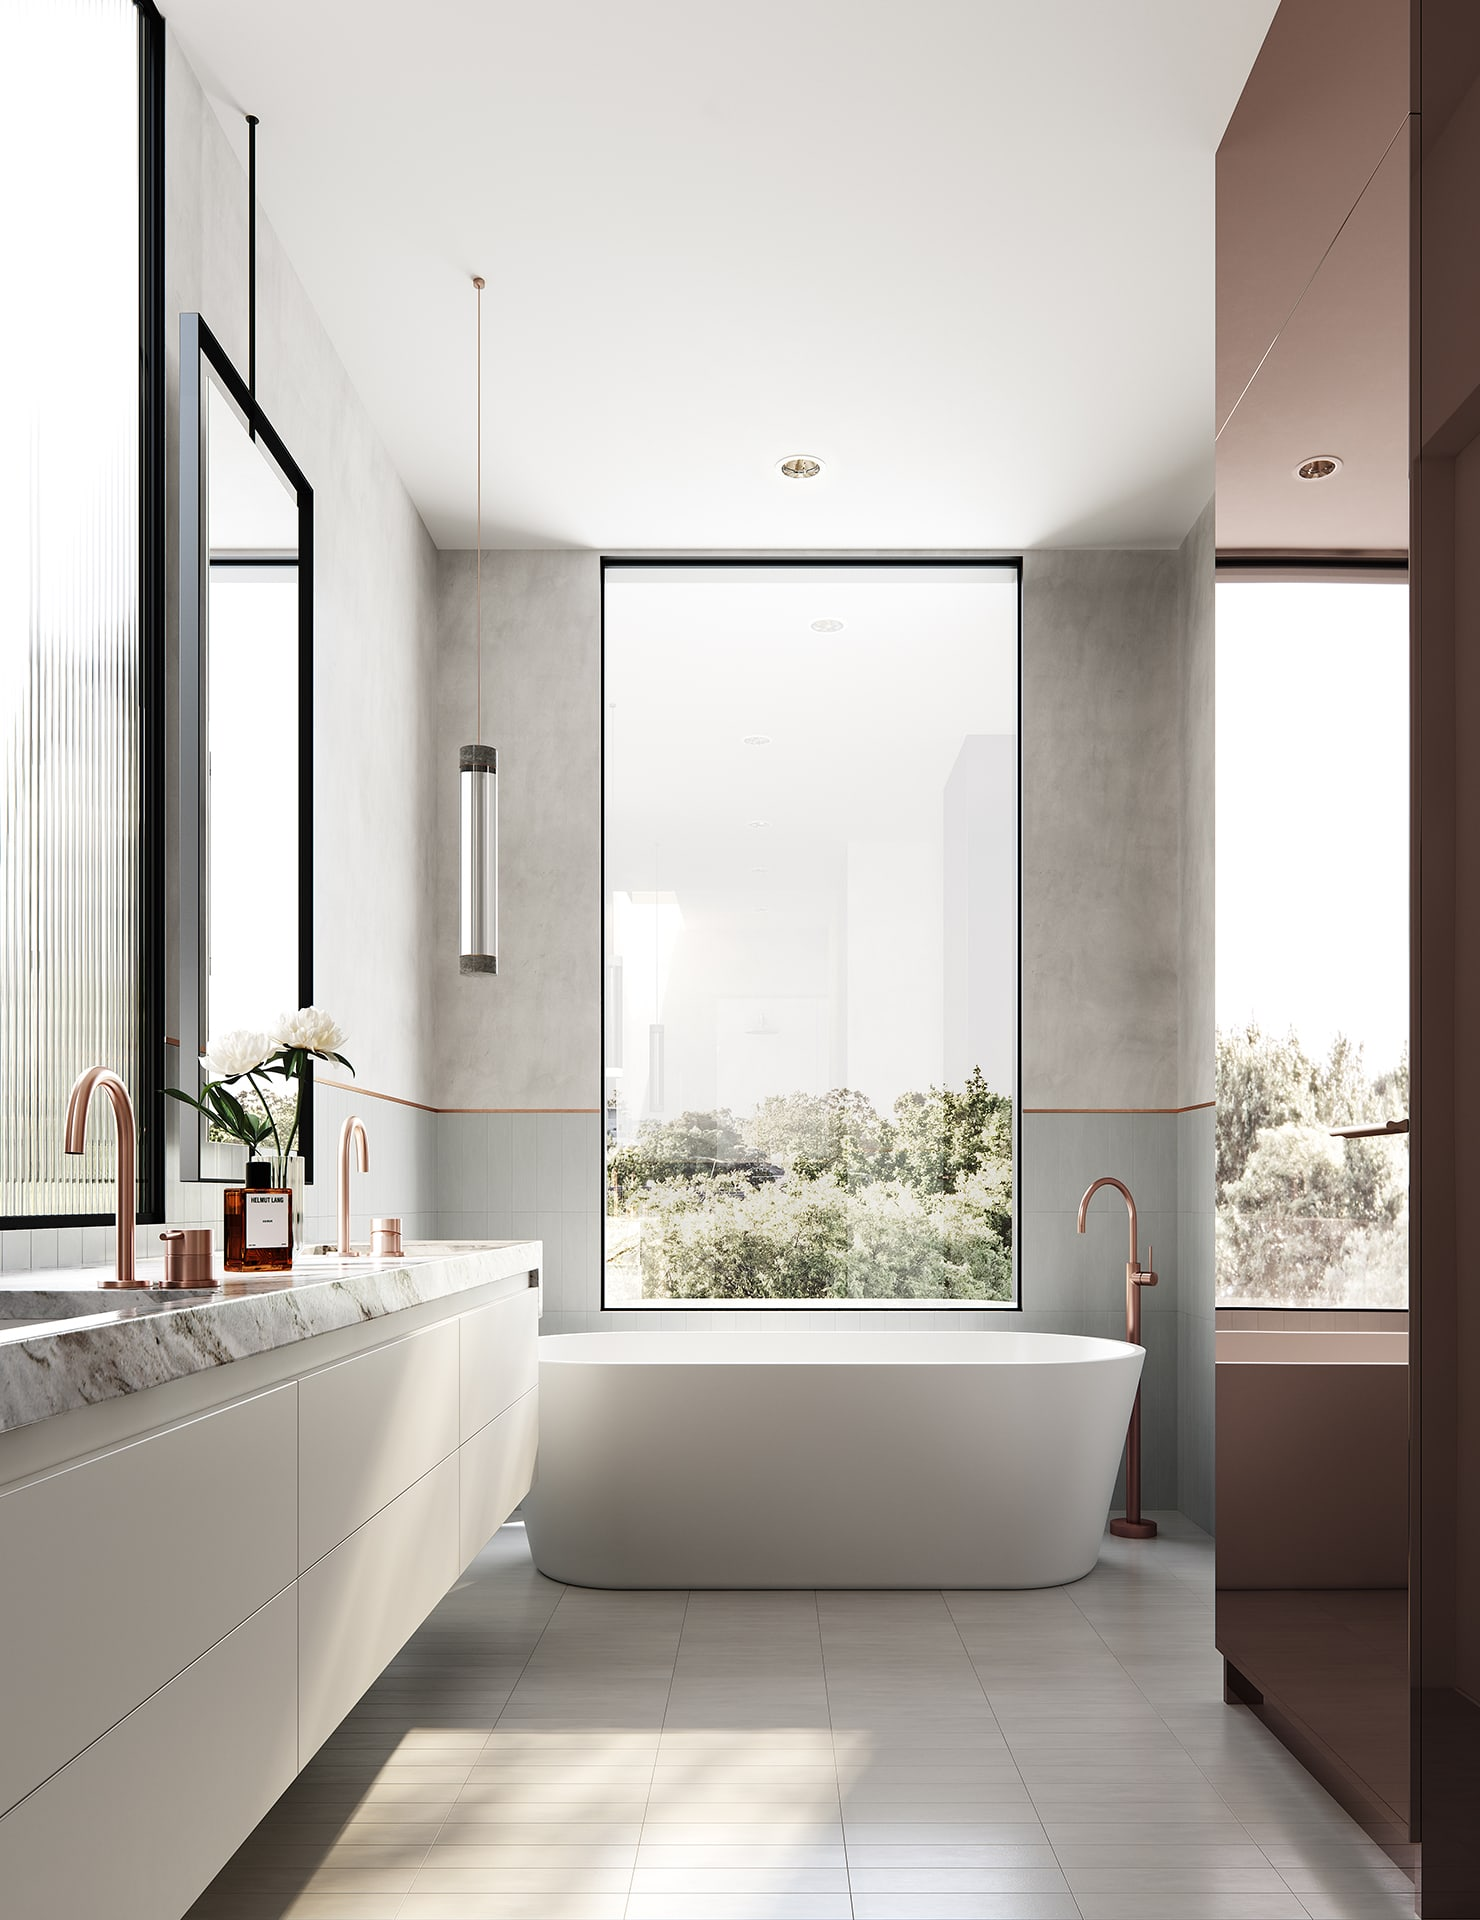 A bathroom after receiving the help of a property development consultant near South Yarra